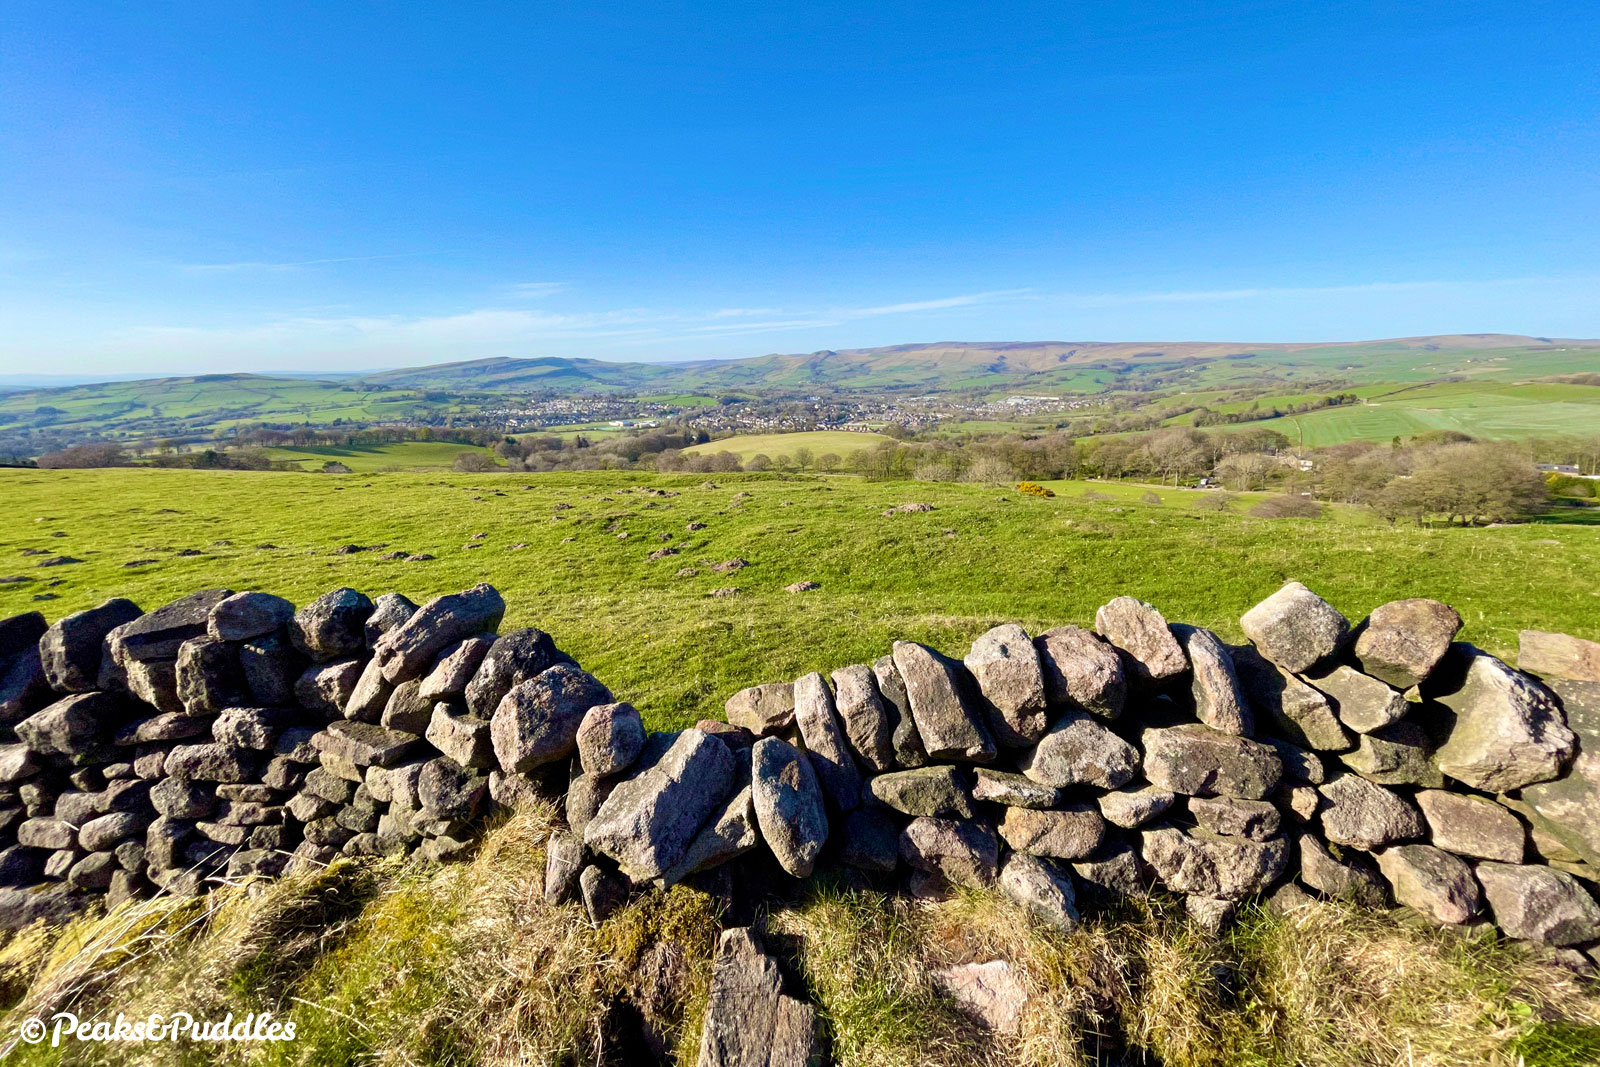 Cowlow Lane offers a spectacular panorama over Chapel-en-le-Frith and beyond to Chinley Churn and the southern side of Kinder Scout.